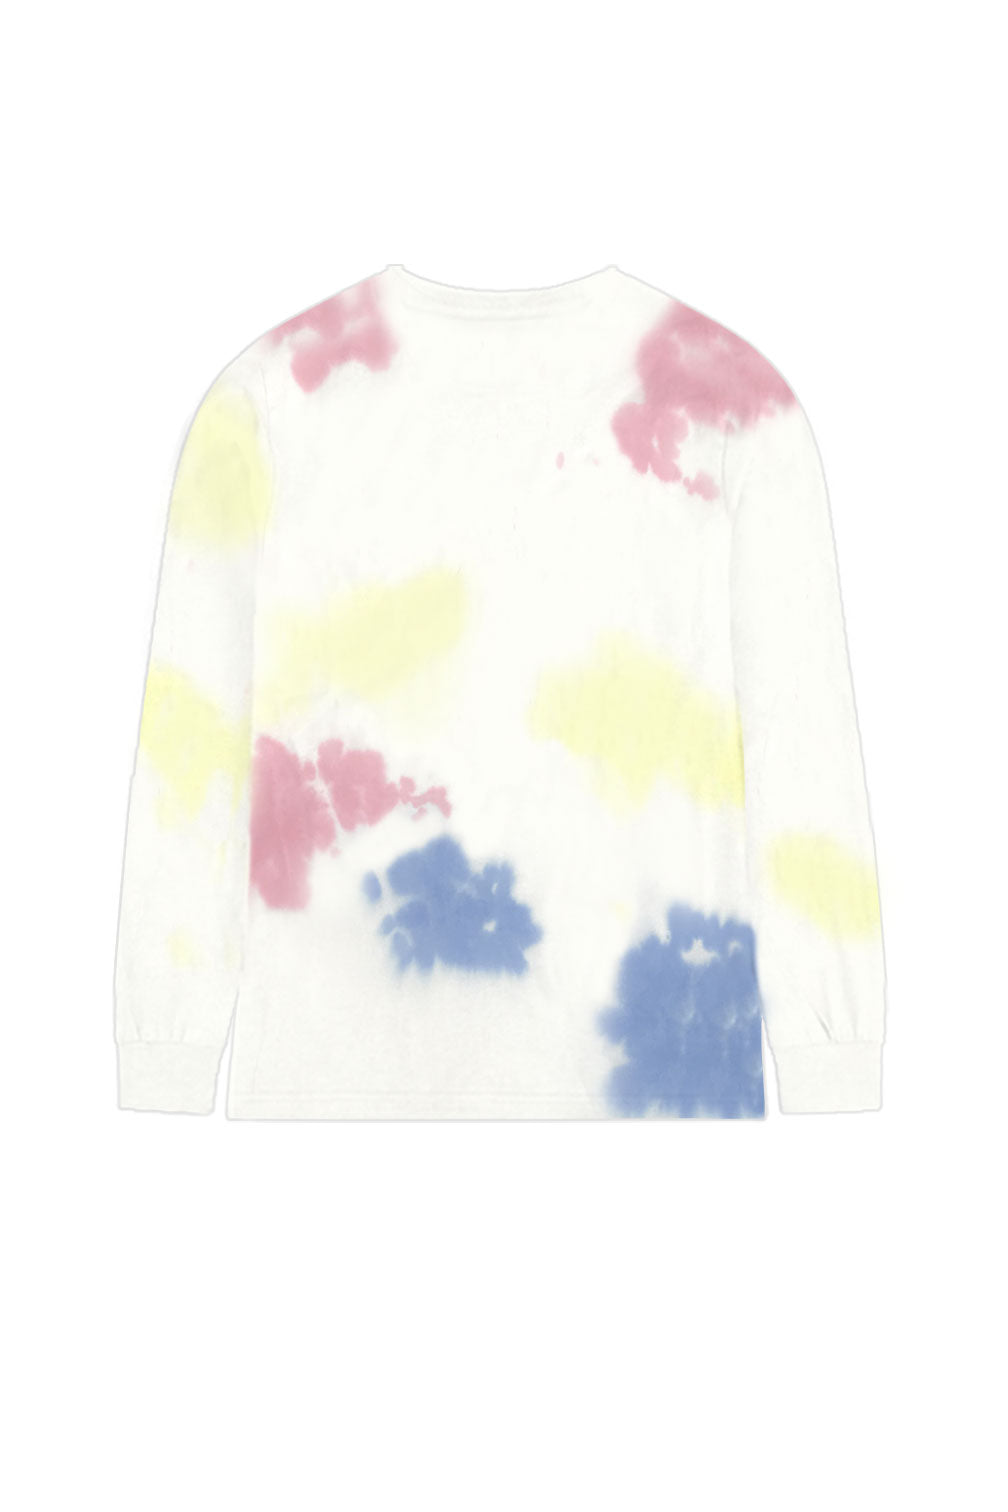 Tie Dye Happy Thoughts Long Sleeve T-shirt